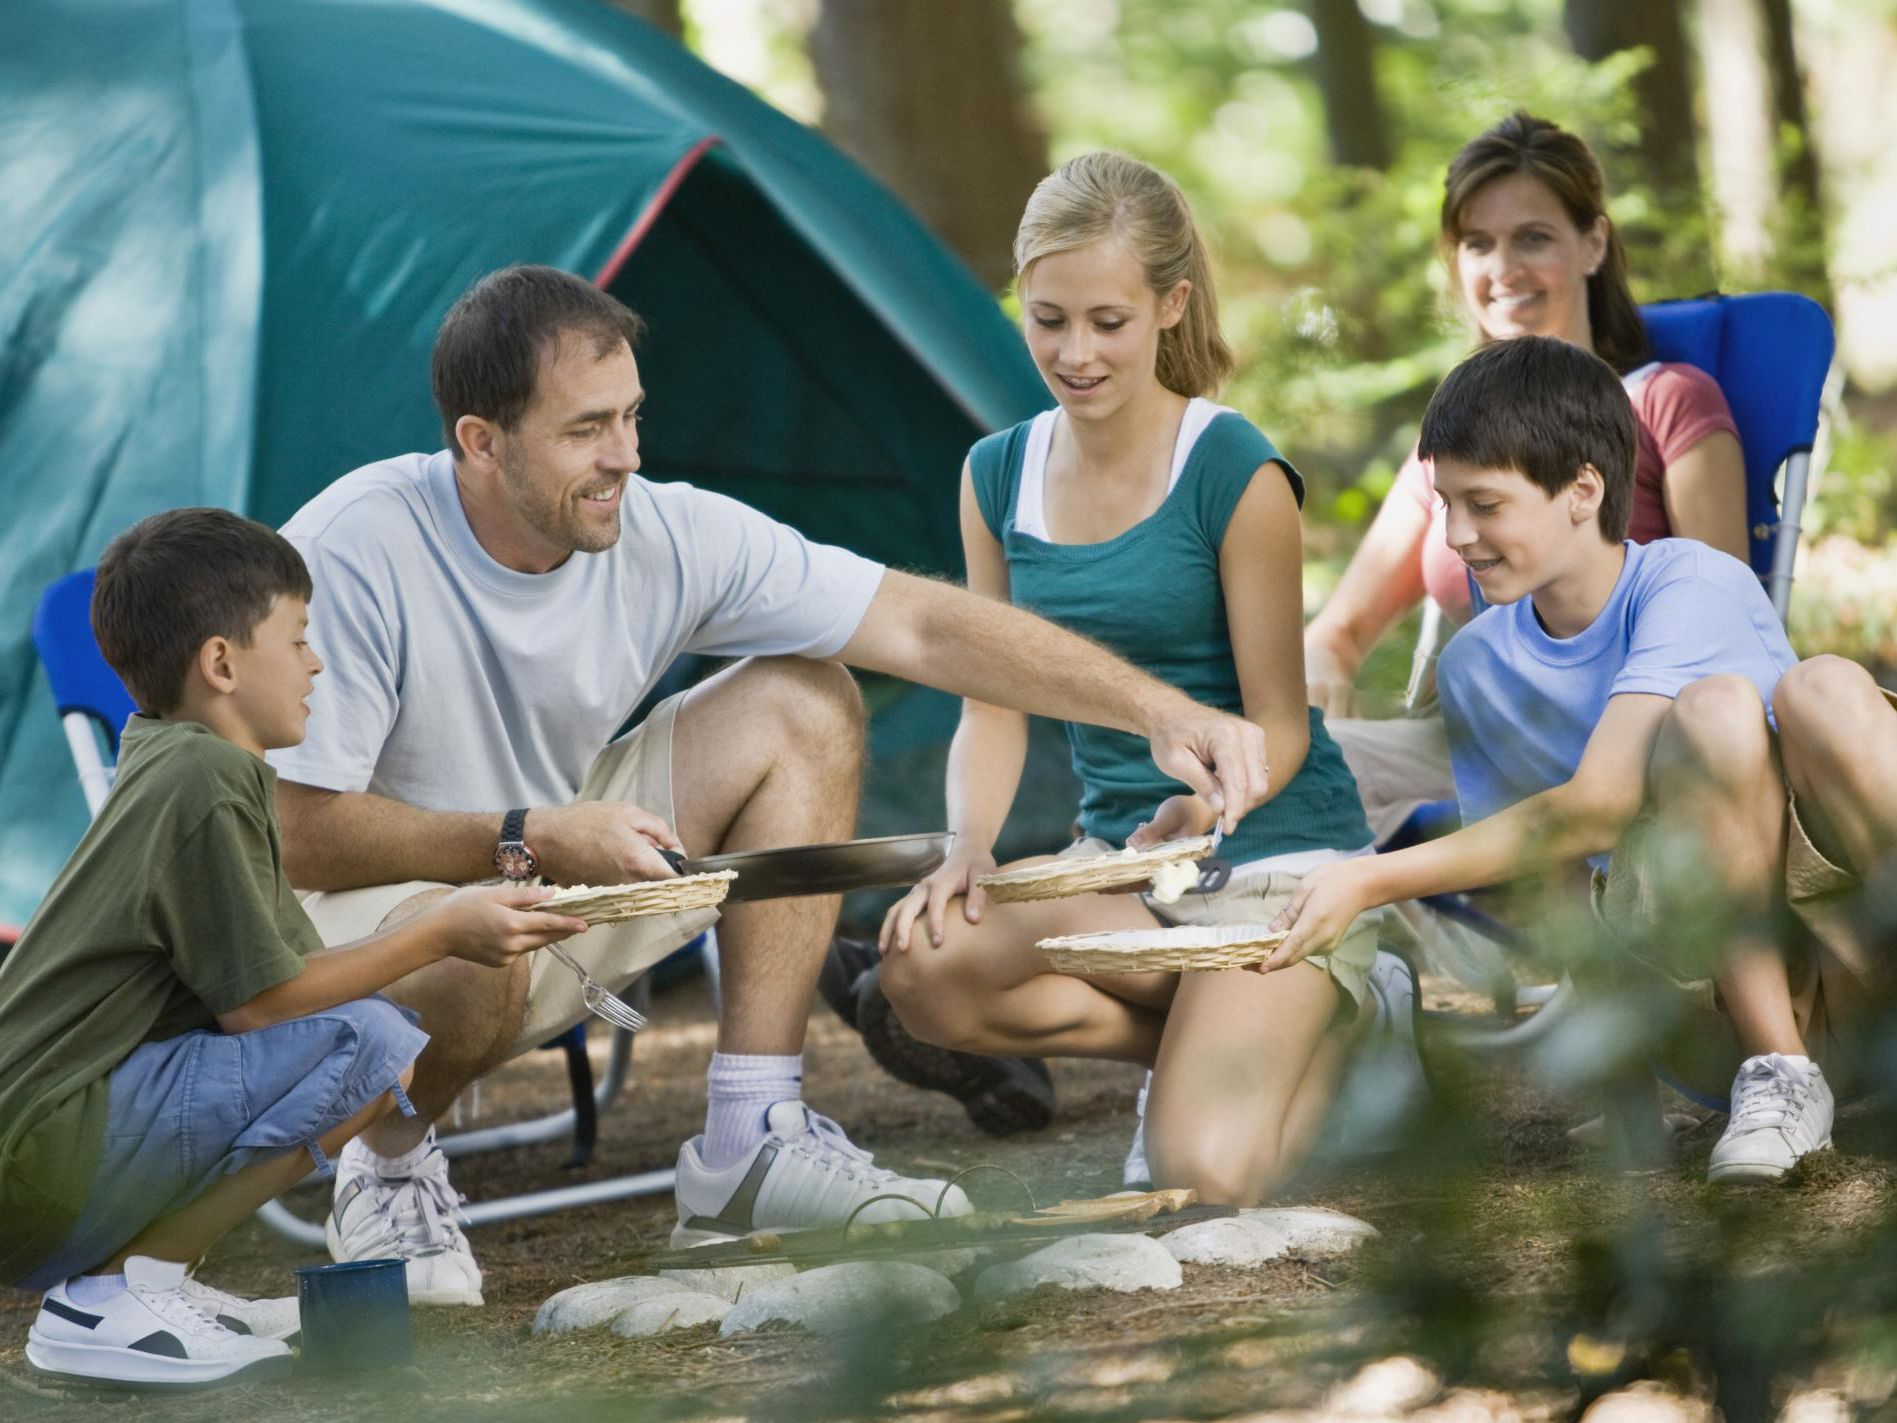 Camping – Fun For You and Your Family